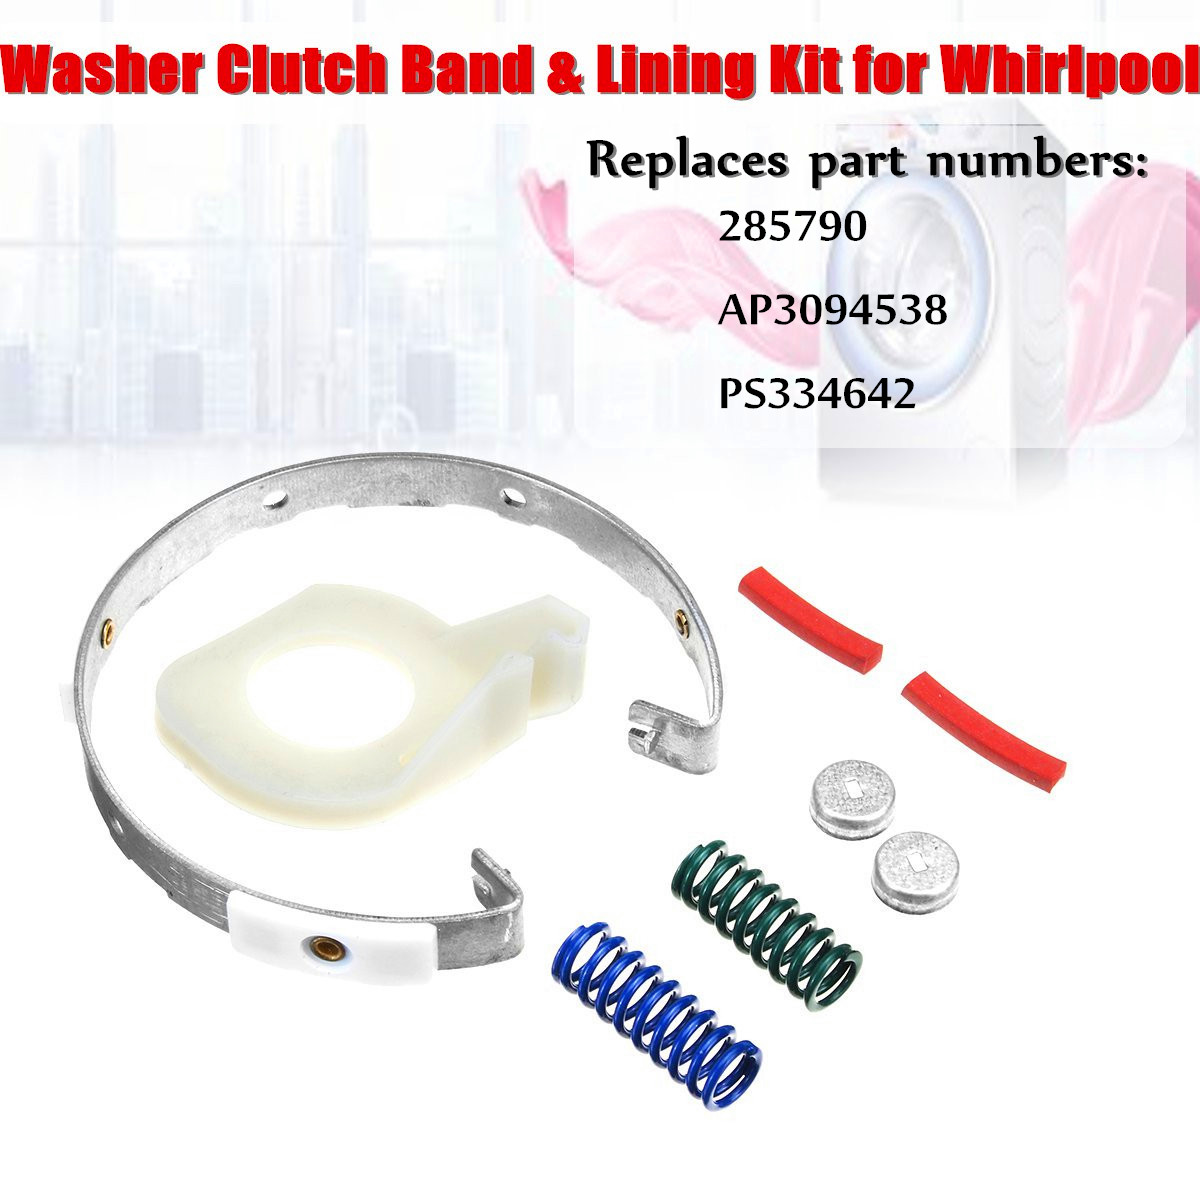 Washer Clutch for Band Lining Kit 285790 AP3094538 PS334642 Assembly For Whirlpool